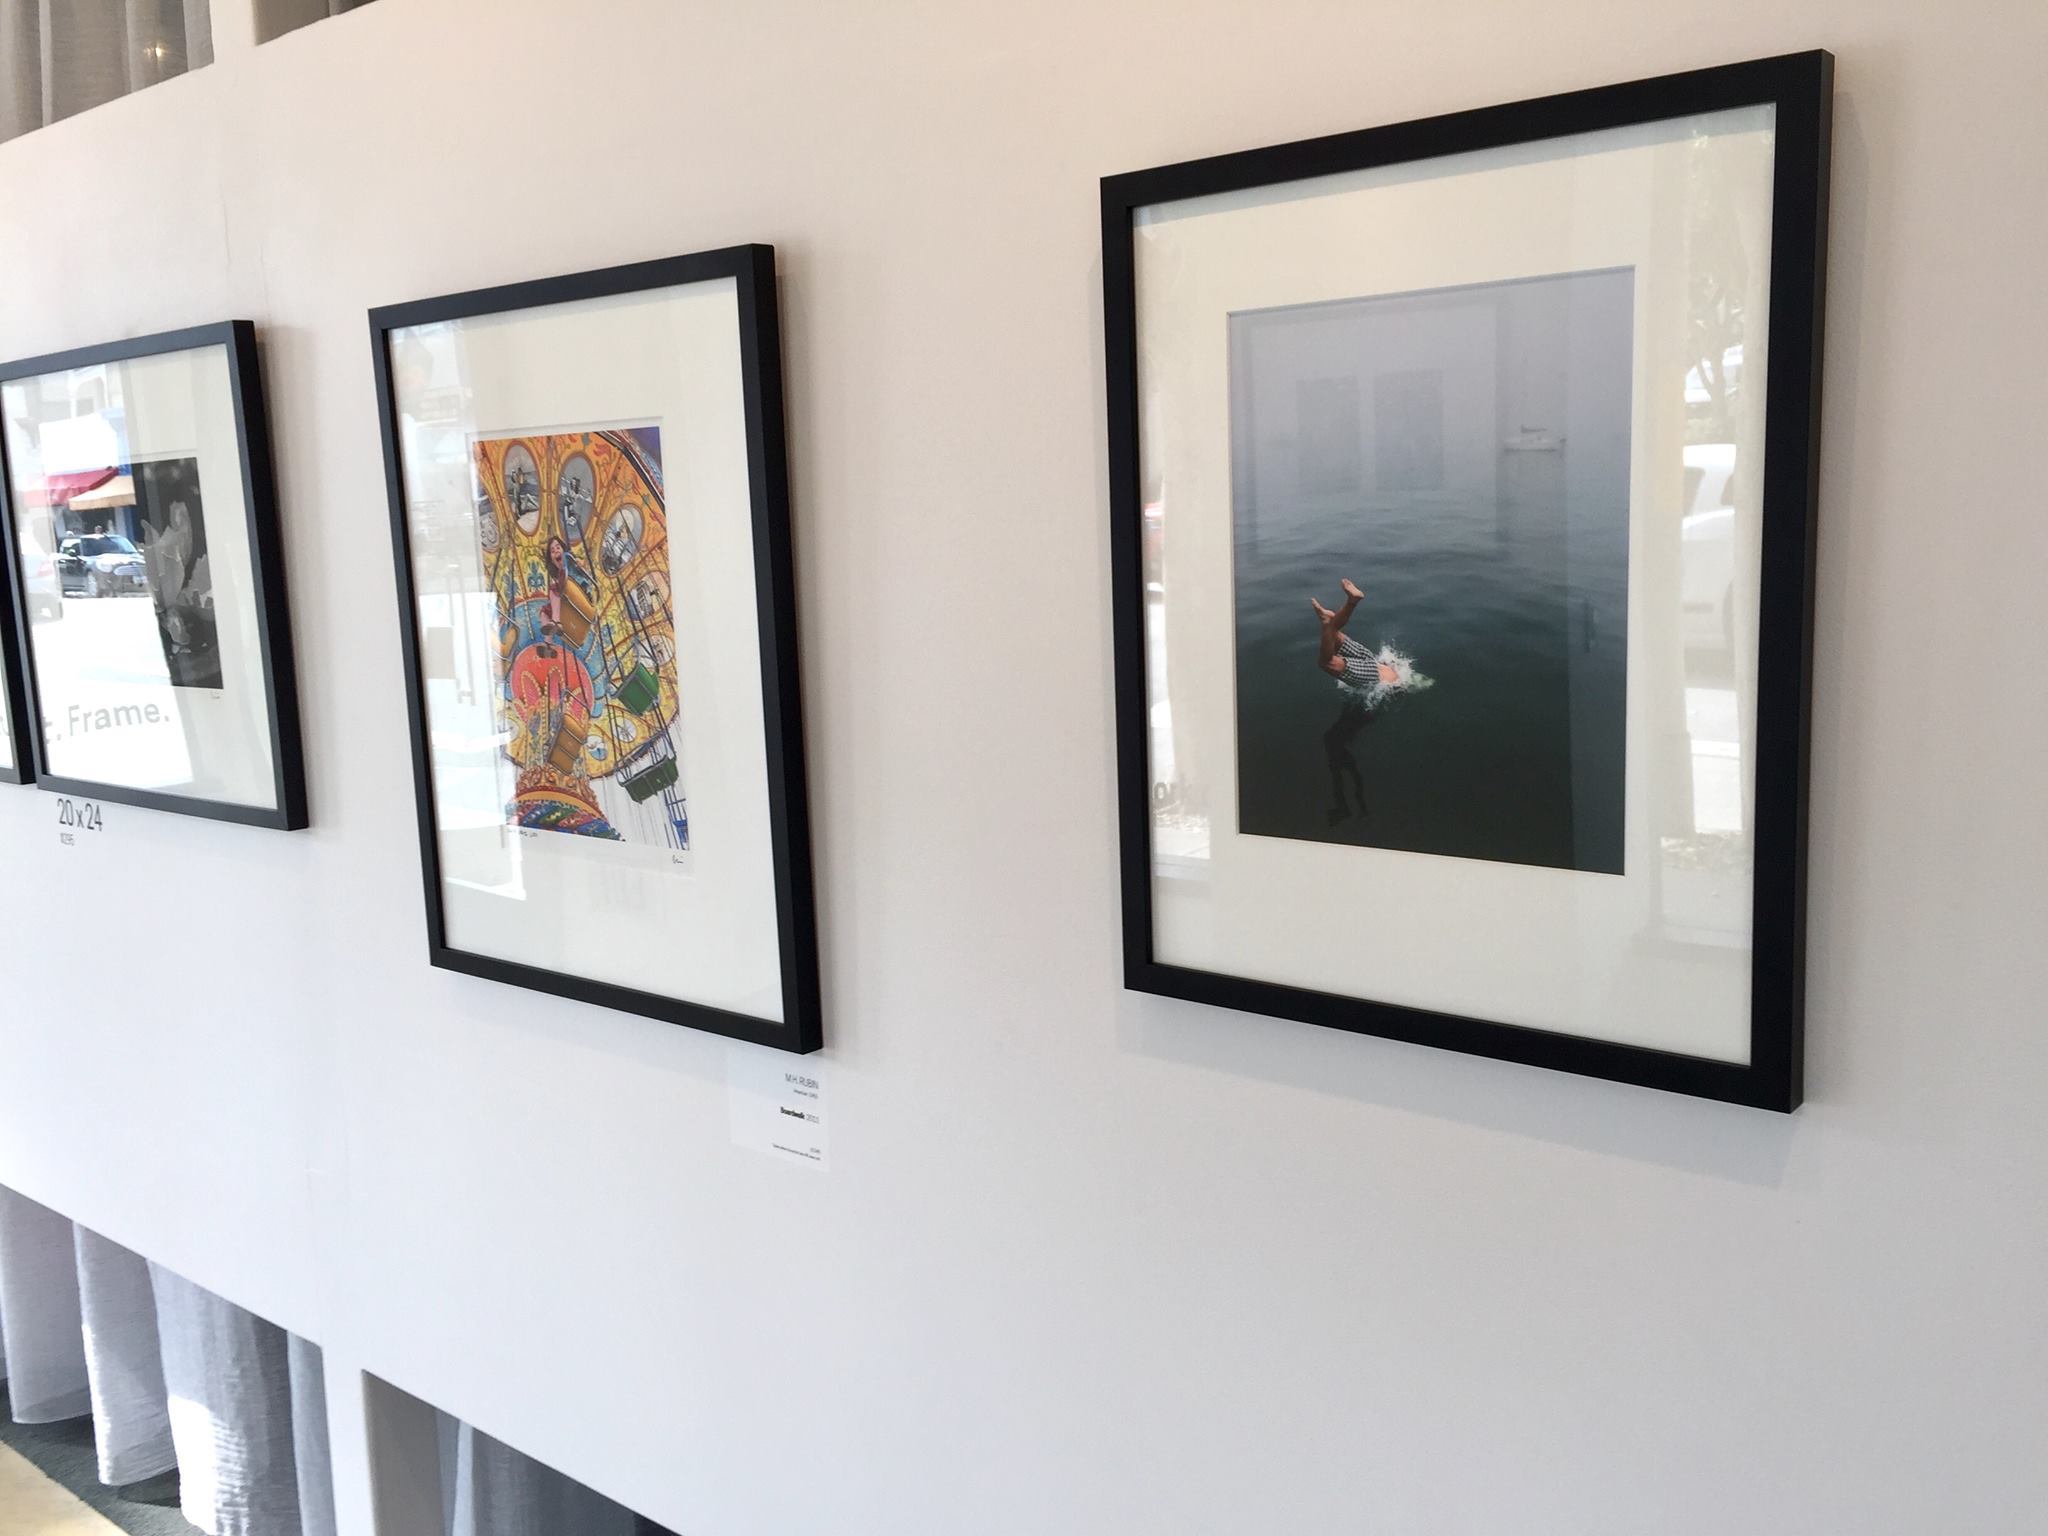 Katie Hughes' photo is currently available for purchase and on display at Neomodern through September.